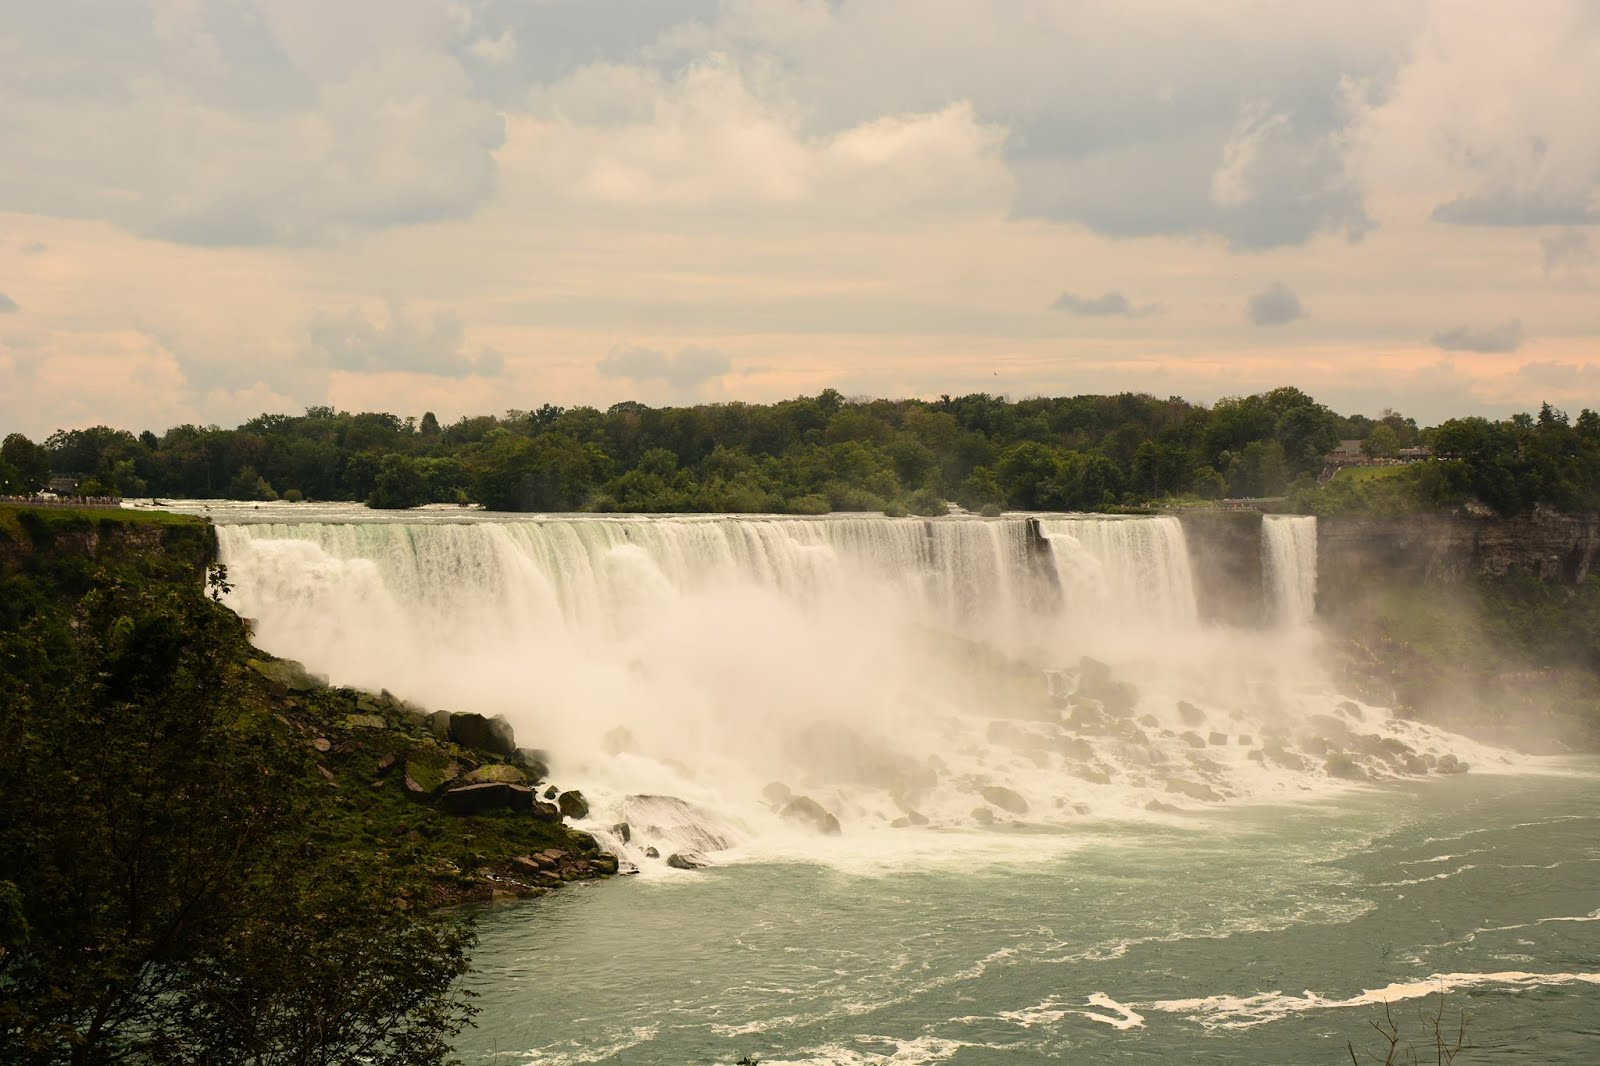 canada, air canada, travelling, holiday, back packing, north america, travel, new york, niagra falls, waterfall, landmark